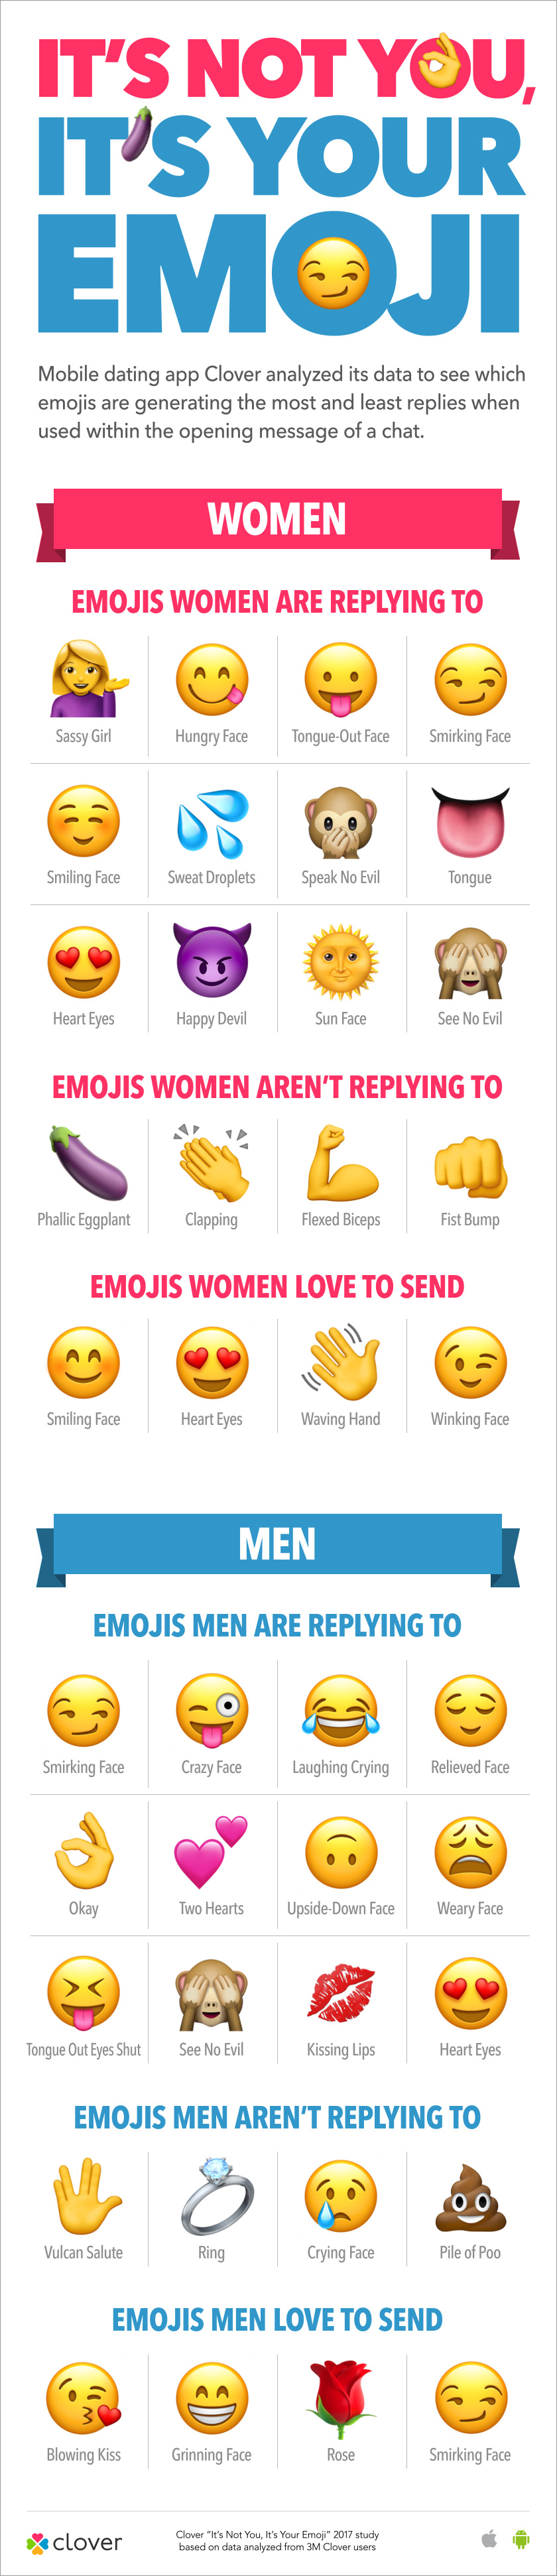 Are emojis bad in dating profile